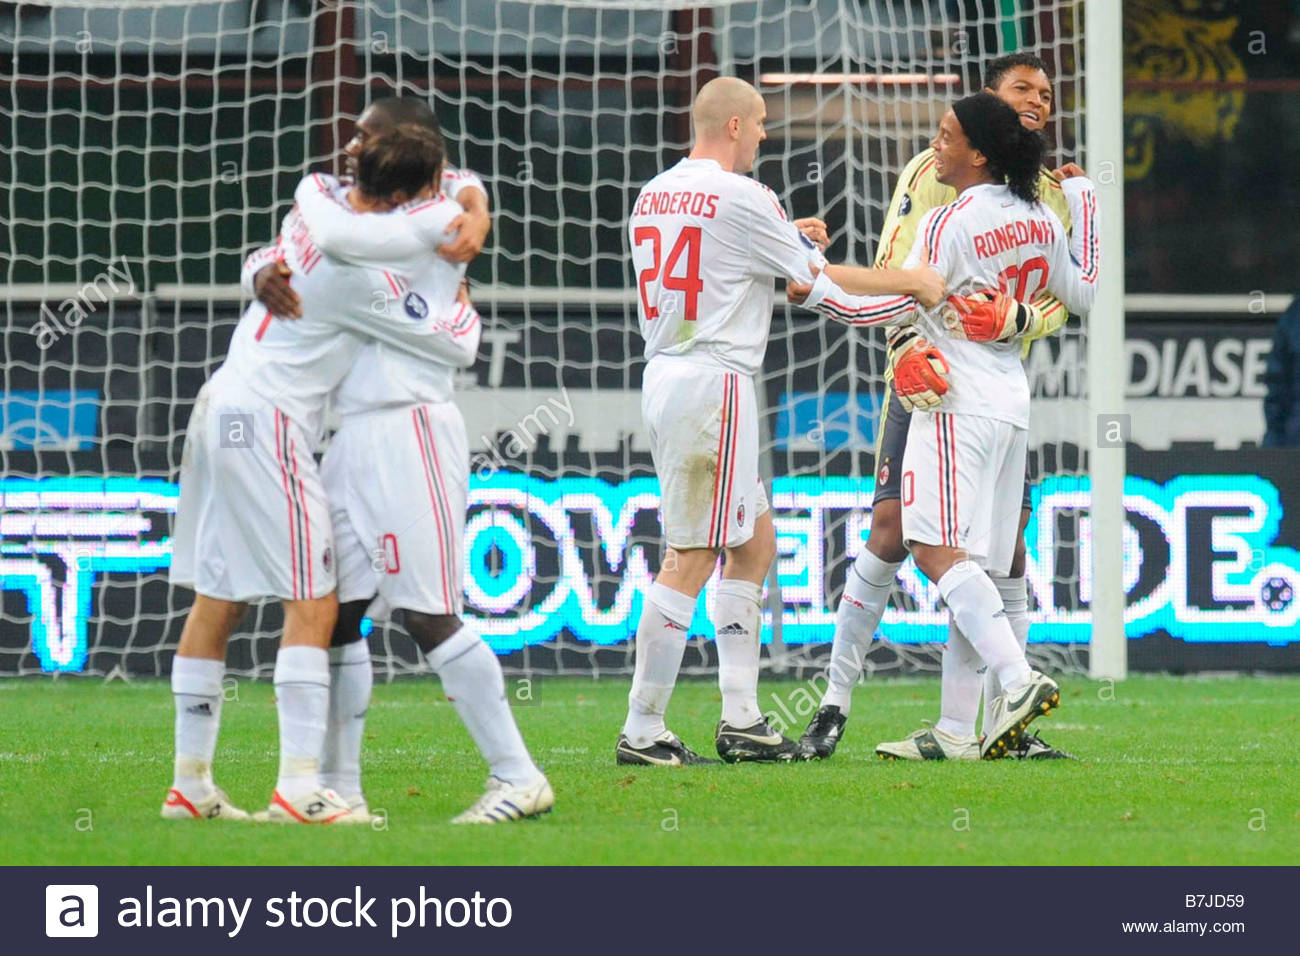 ronaldinho celebrated by his team mates'milano 06 11 2008 'football uefa cup 2008-2009'milan-sporting braga 1-0'photo - Stock Image